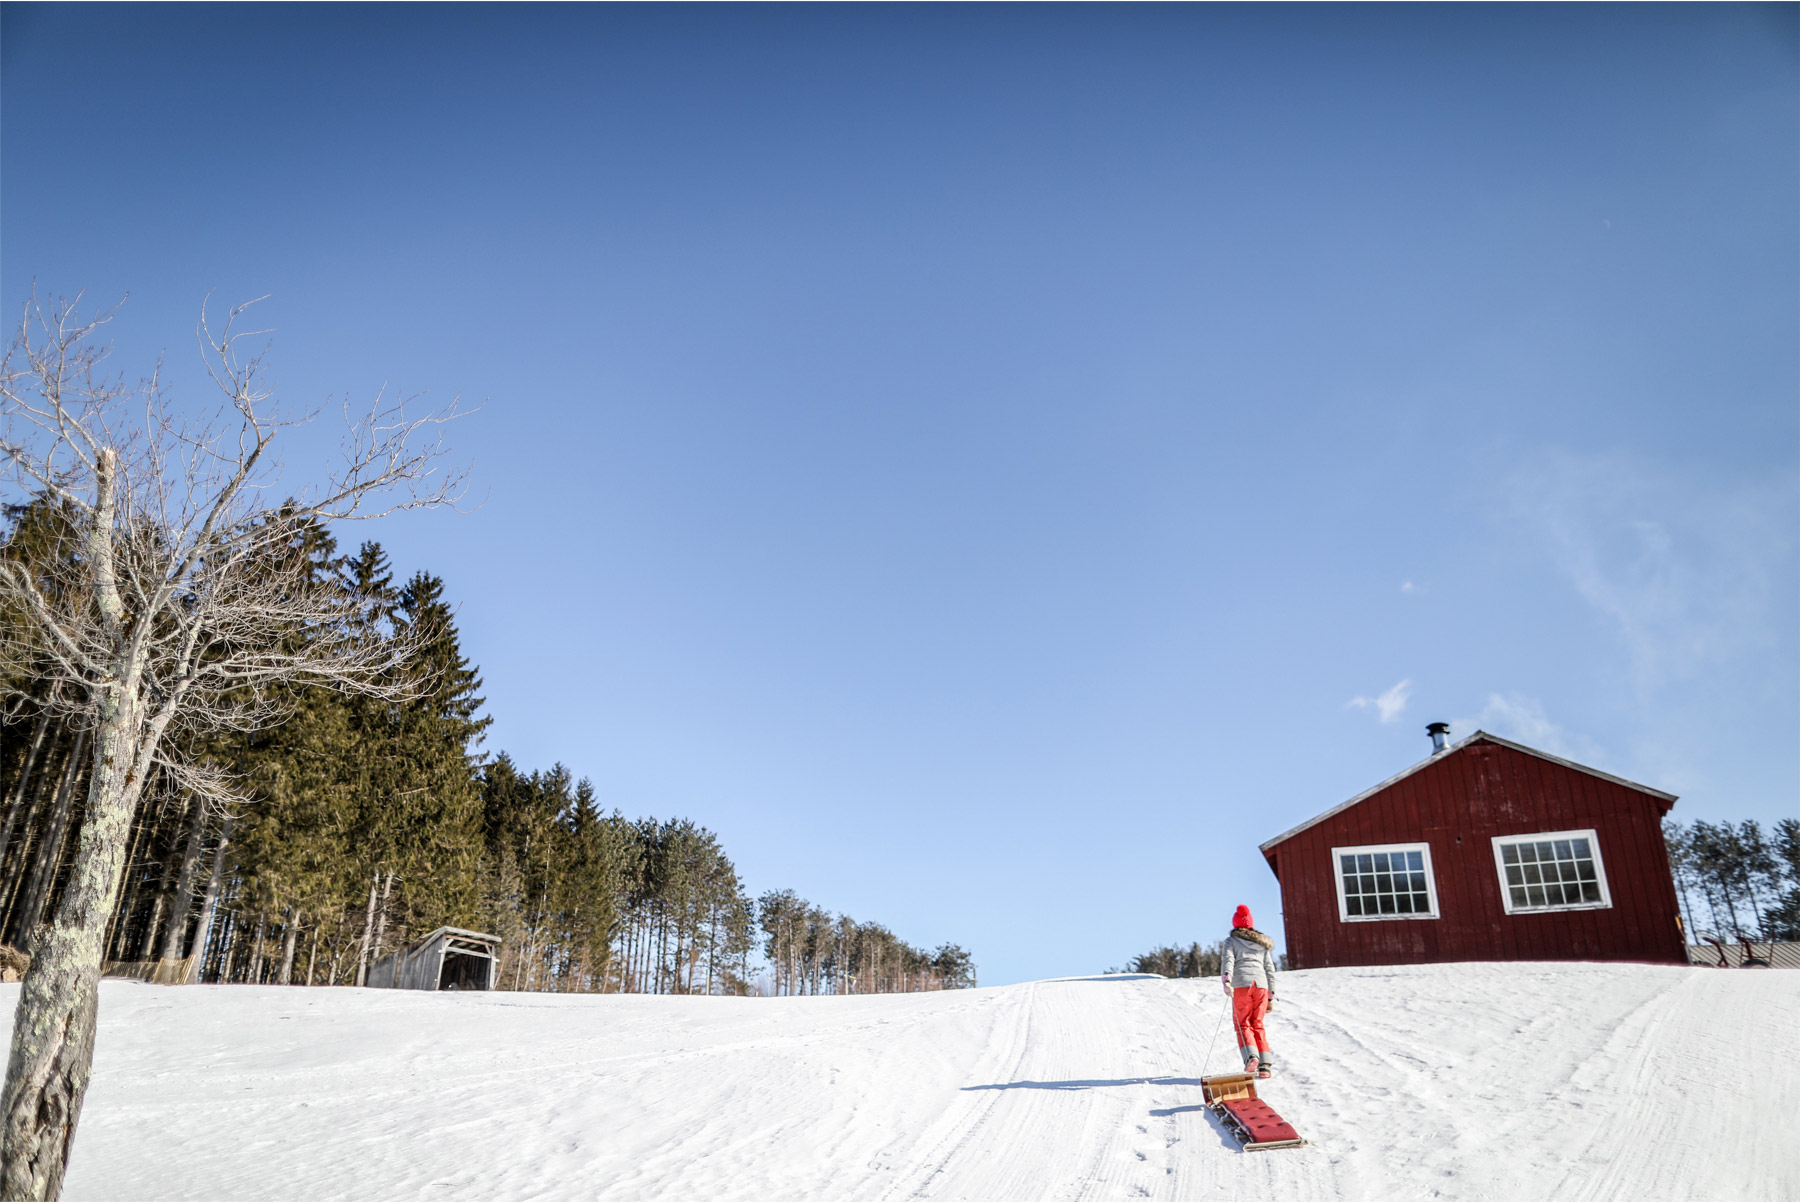 12-Stowe-Vermont-by-Andrew-Vick-Photography-Edson-Hill-Winter-Lodge-Sledding.jpg